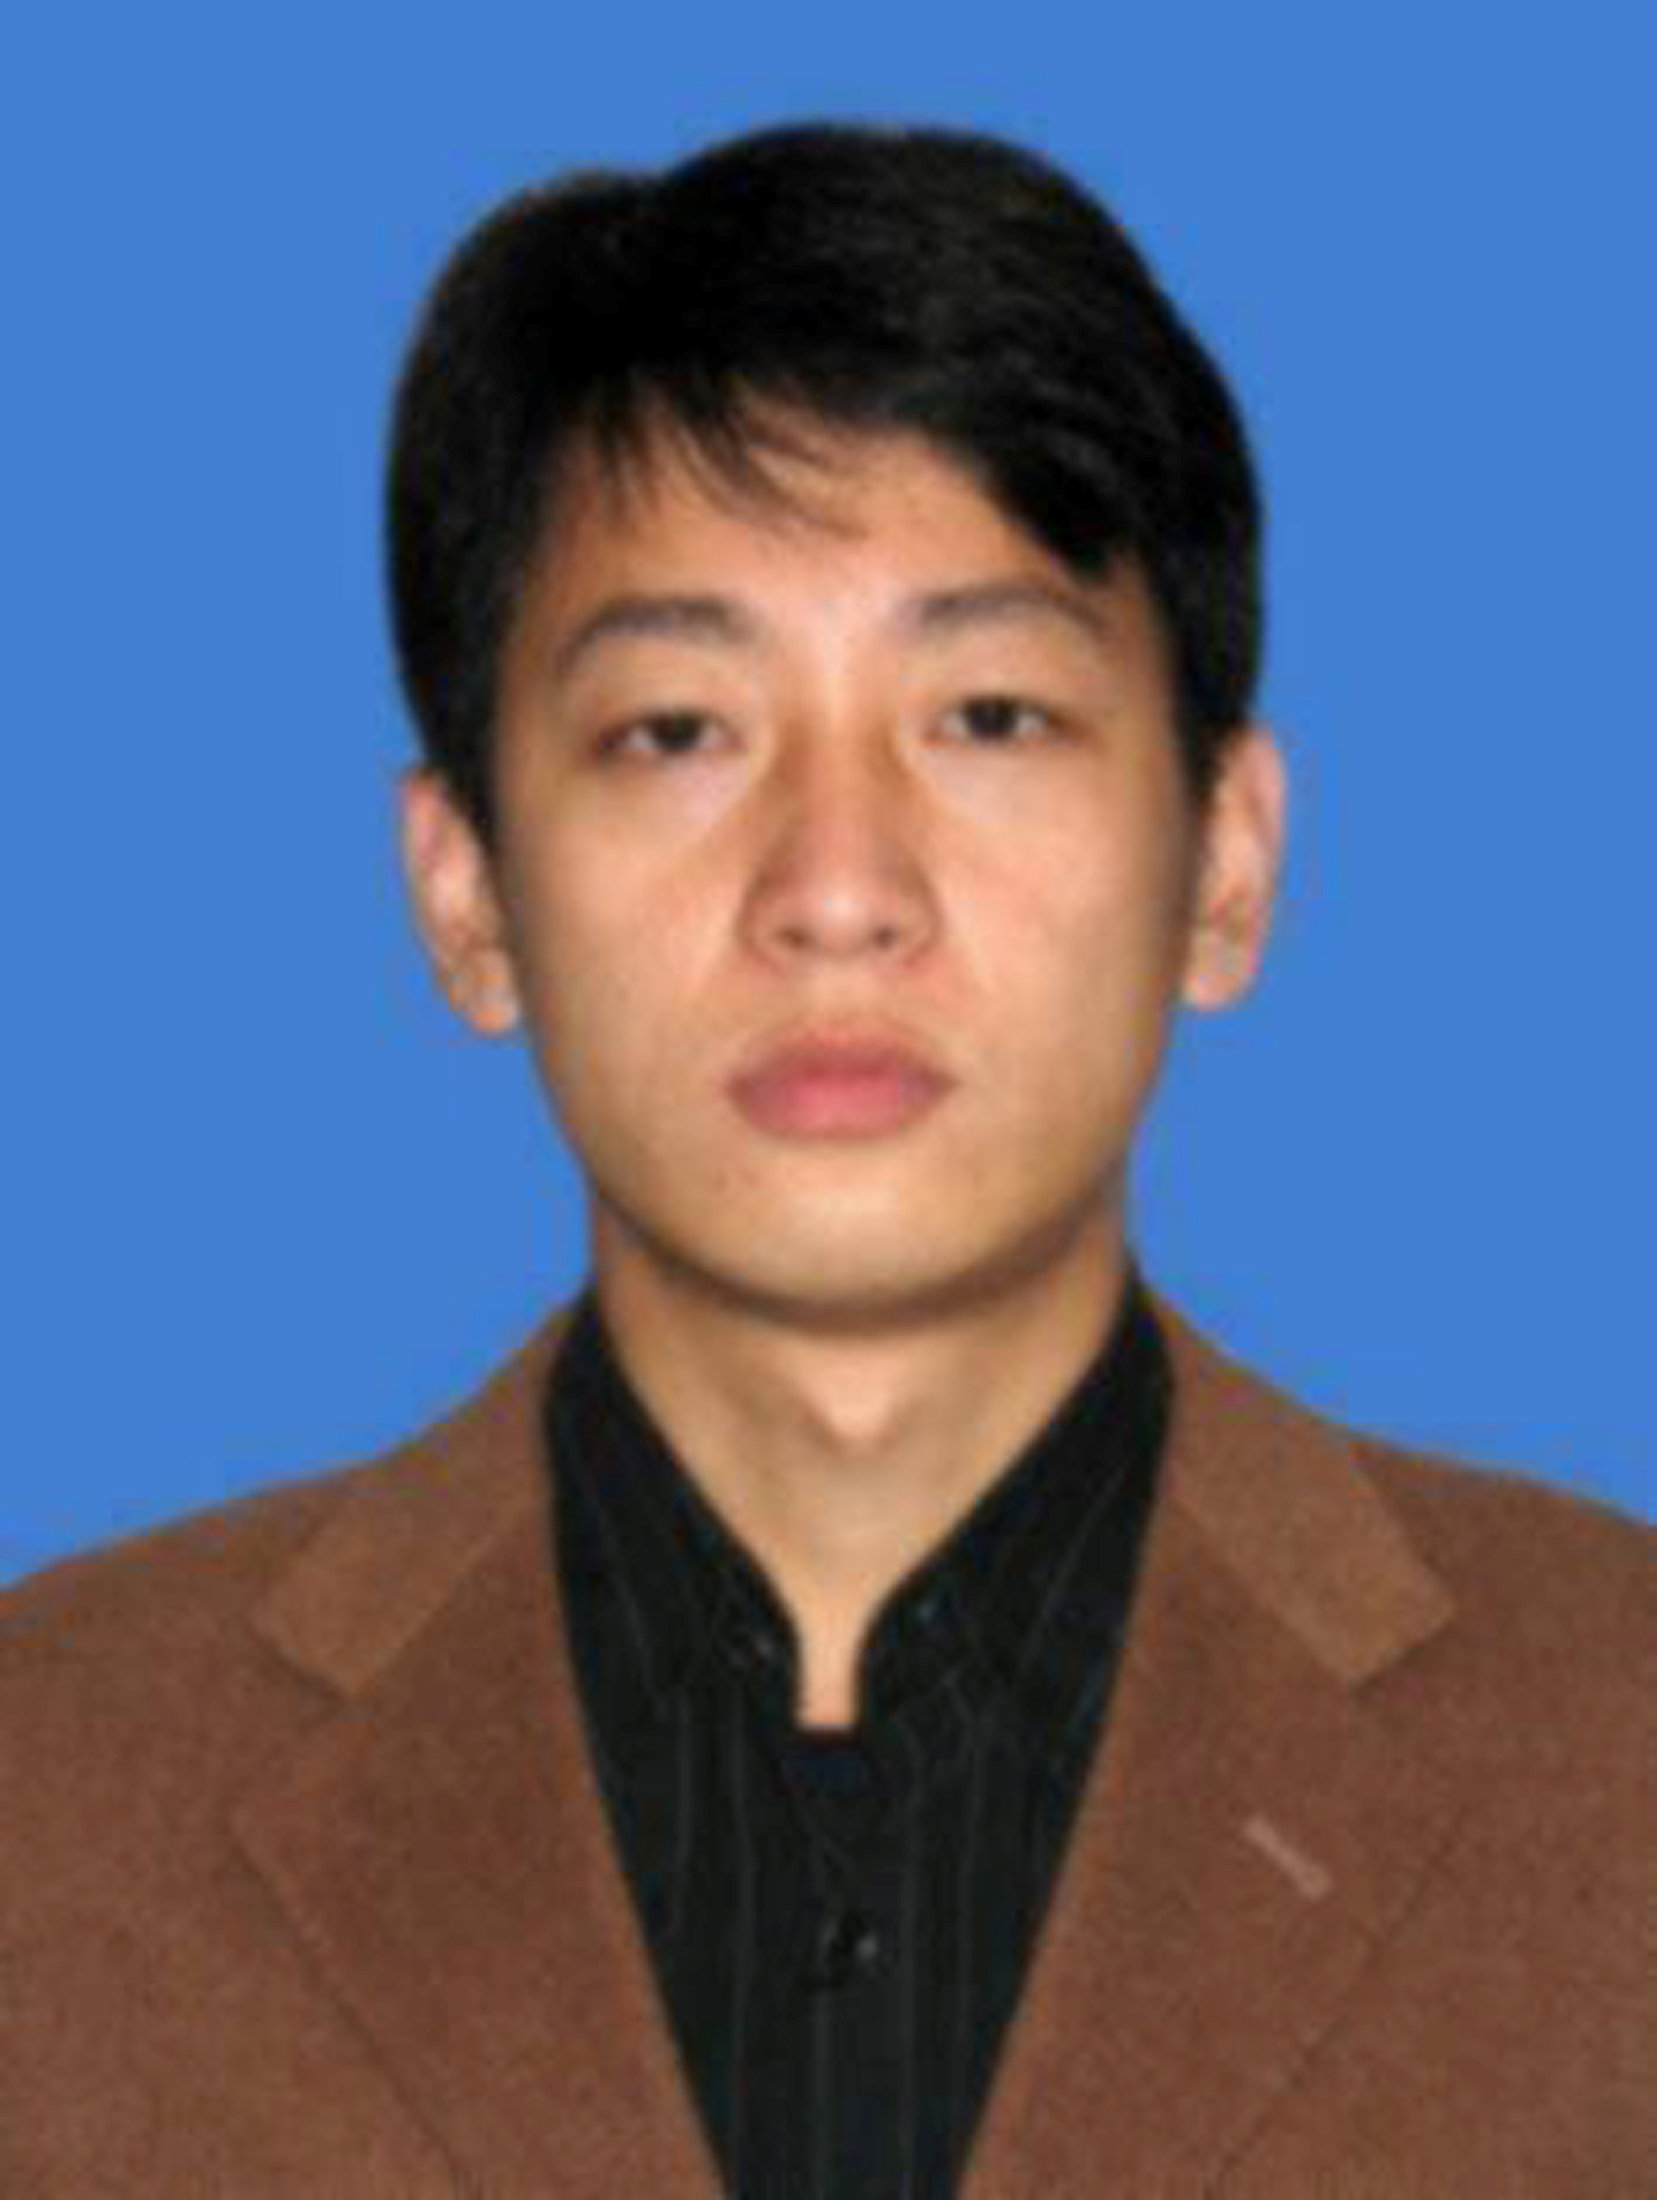 FBI photo of Jin Hyok Park of North Korea a suspected North Korean hacker in the 2014 cyber attack on Sony Corp